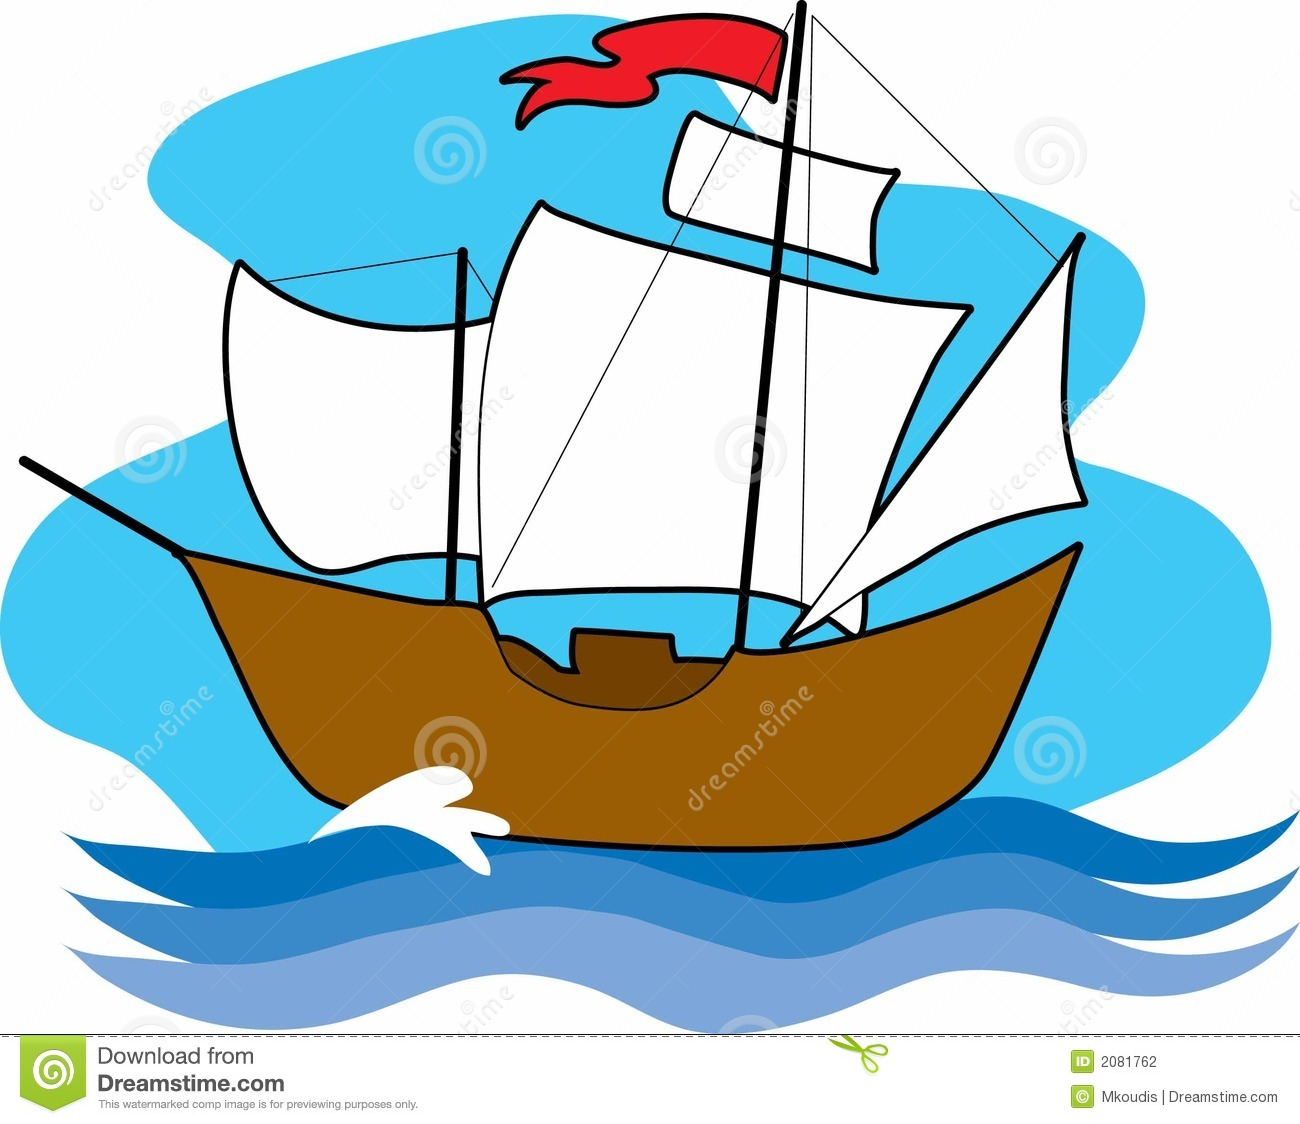 boats clipart old fashioned